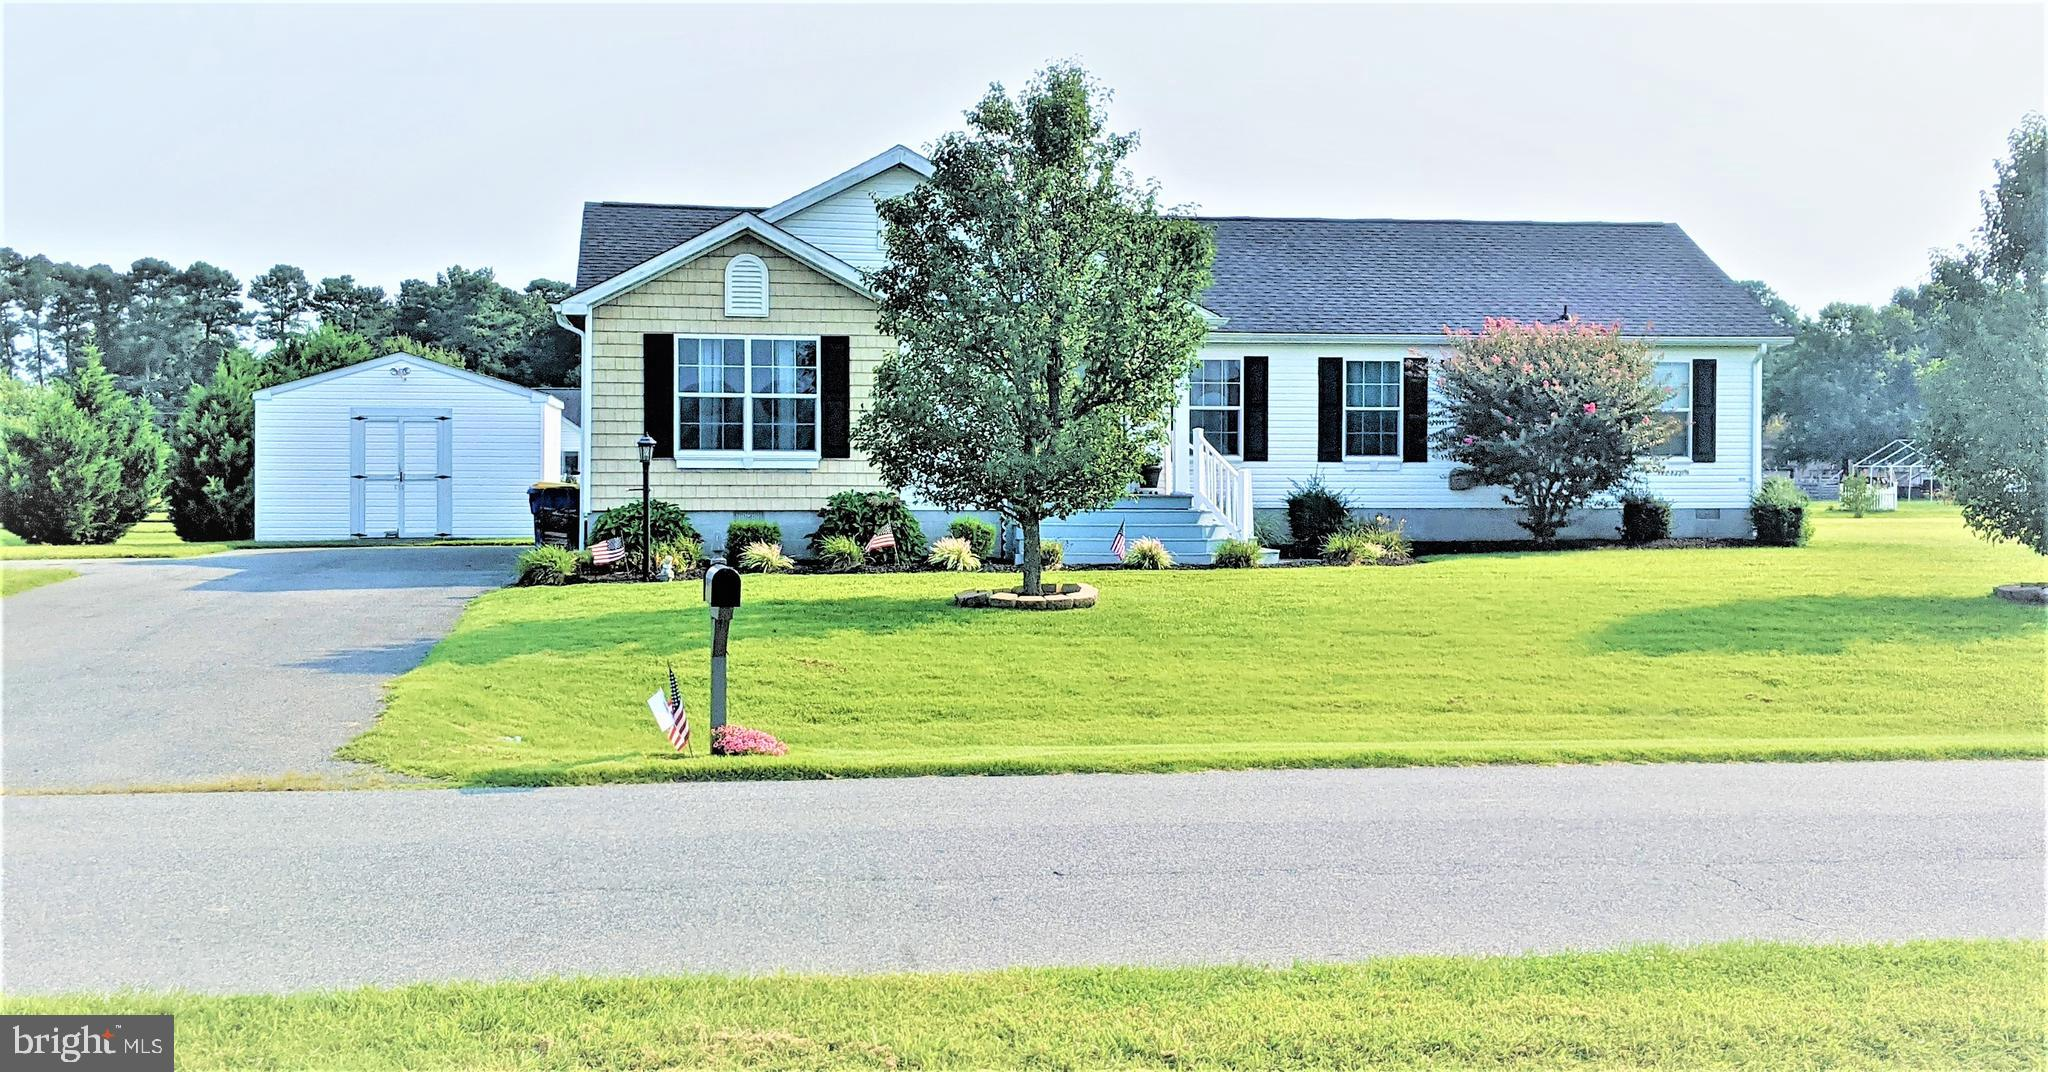 Wonderful & peaceful country living is found here! Come and enjoy how a little over 3/4 of an acre can feel with a well maintained 3 bedroom 2 FULL bathroom open concept ranch style home. Located in Lincoln, Delaware about 15 minutes from the beaches! Conveniently located close to local shopping, dining, and Route 1, and easy access to the beach and you can still enjoy a starry night in your backyard. This home is great for entertaining lots of friends and family with a new large deck and a wide ranging backyard. New upgraded HVAC system (2019), new roof, new septic, new hot water heater, new carpet, updated plumbing. Entertaining is a breeze as the entry-level boasts a beautiful living room with a beautiful wood burning, stone fireplace, a formal dining room, and a kitchen highlighting new granite counters. The dining room also opens to the deck that provides even more space for entertaining an access to the large above ground pool. It also serves as a cozy spot to relax and sip your morning coffee. . Move-in ready and priced to sell, this home could be the perfect fit for you and your growing family. Schedule your private tour to experience all this beautiful home has to offer! Please follow all COVID-19 protocols. The home is being sold AS-IS. All inspections are for informational purposes only. The sellers have upgraded a lot of the house systems.